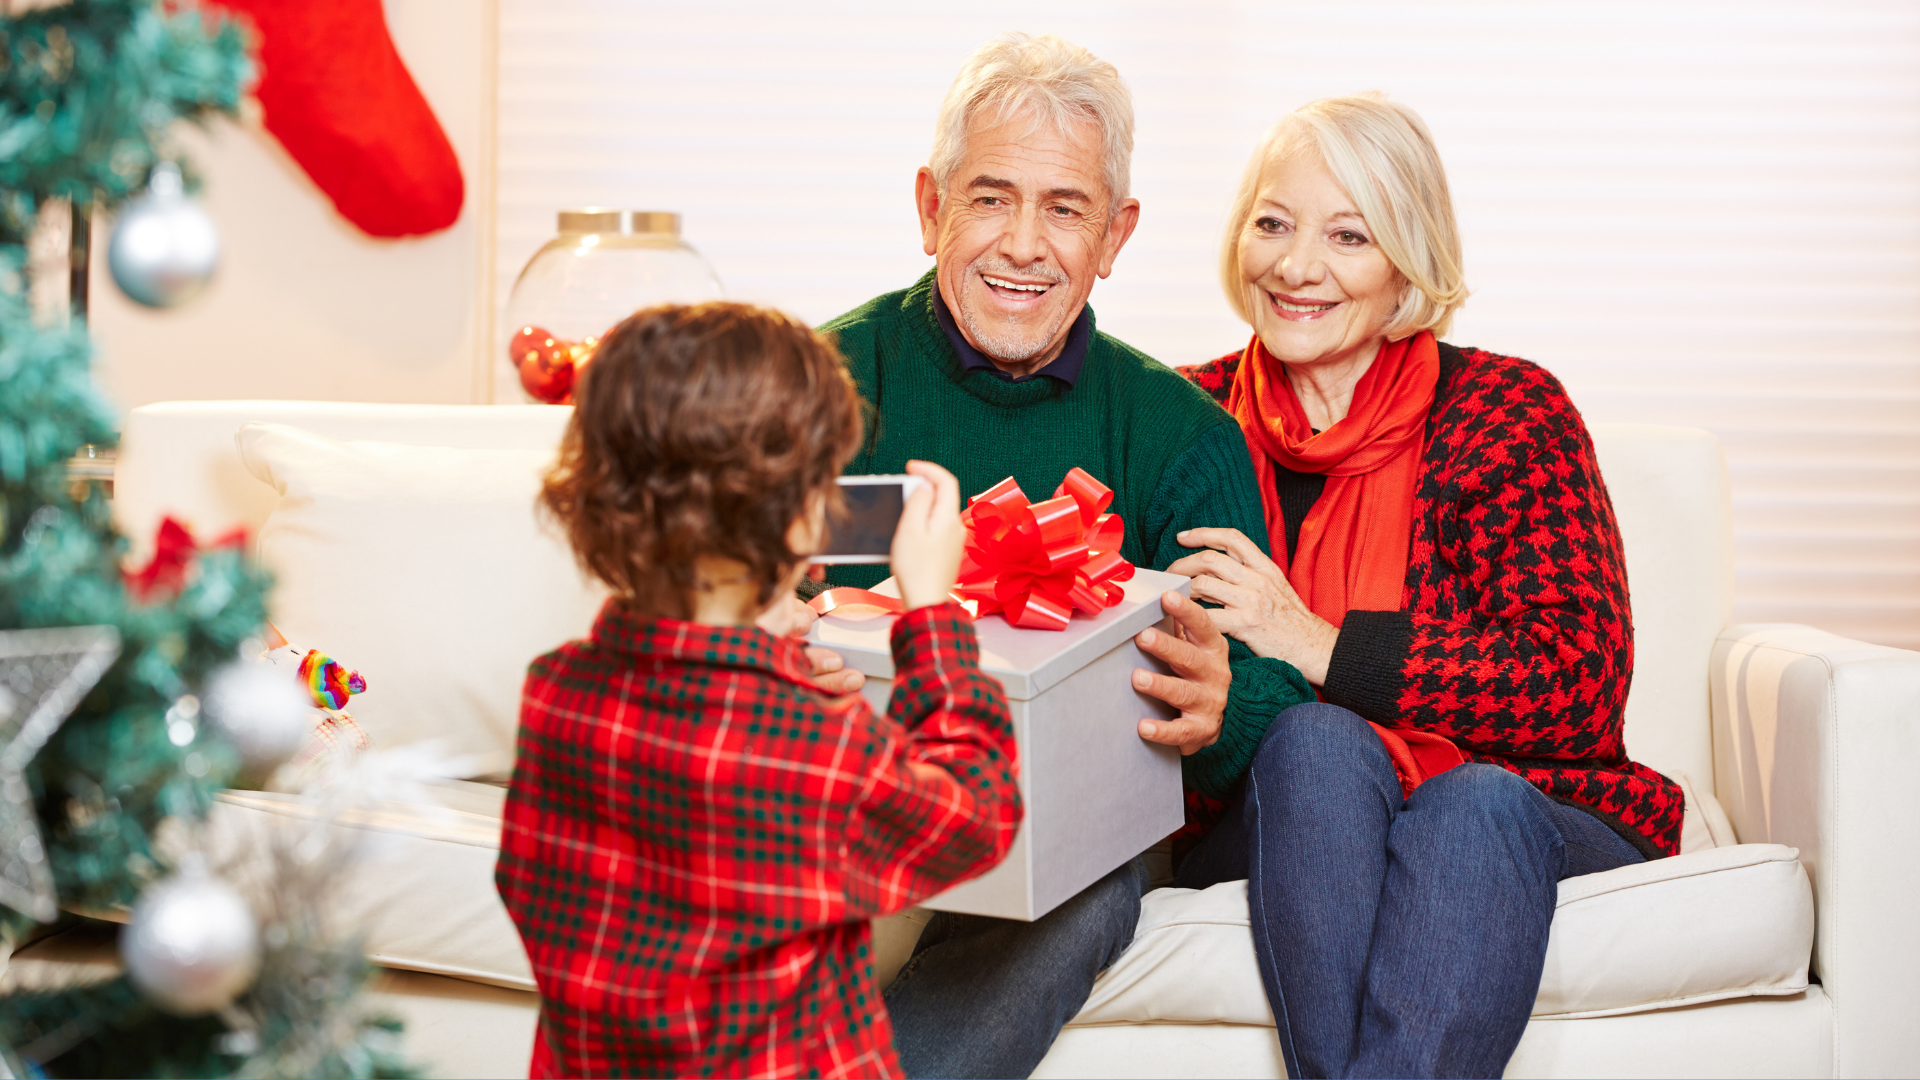 with some practical tips, proper planning, and help, you can enjoy the holidays free of pain and added stress. Here are some simple ways that will help you.